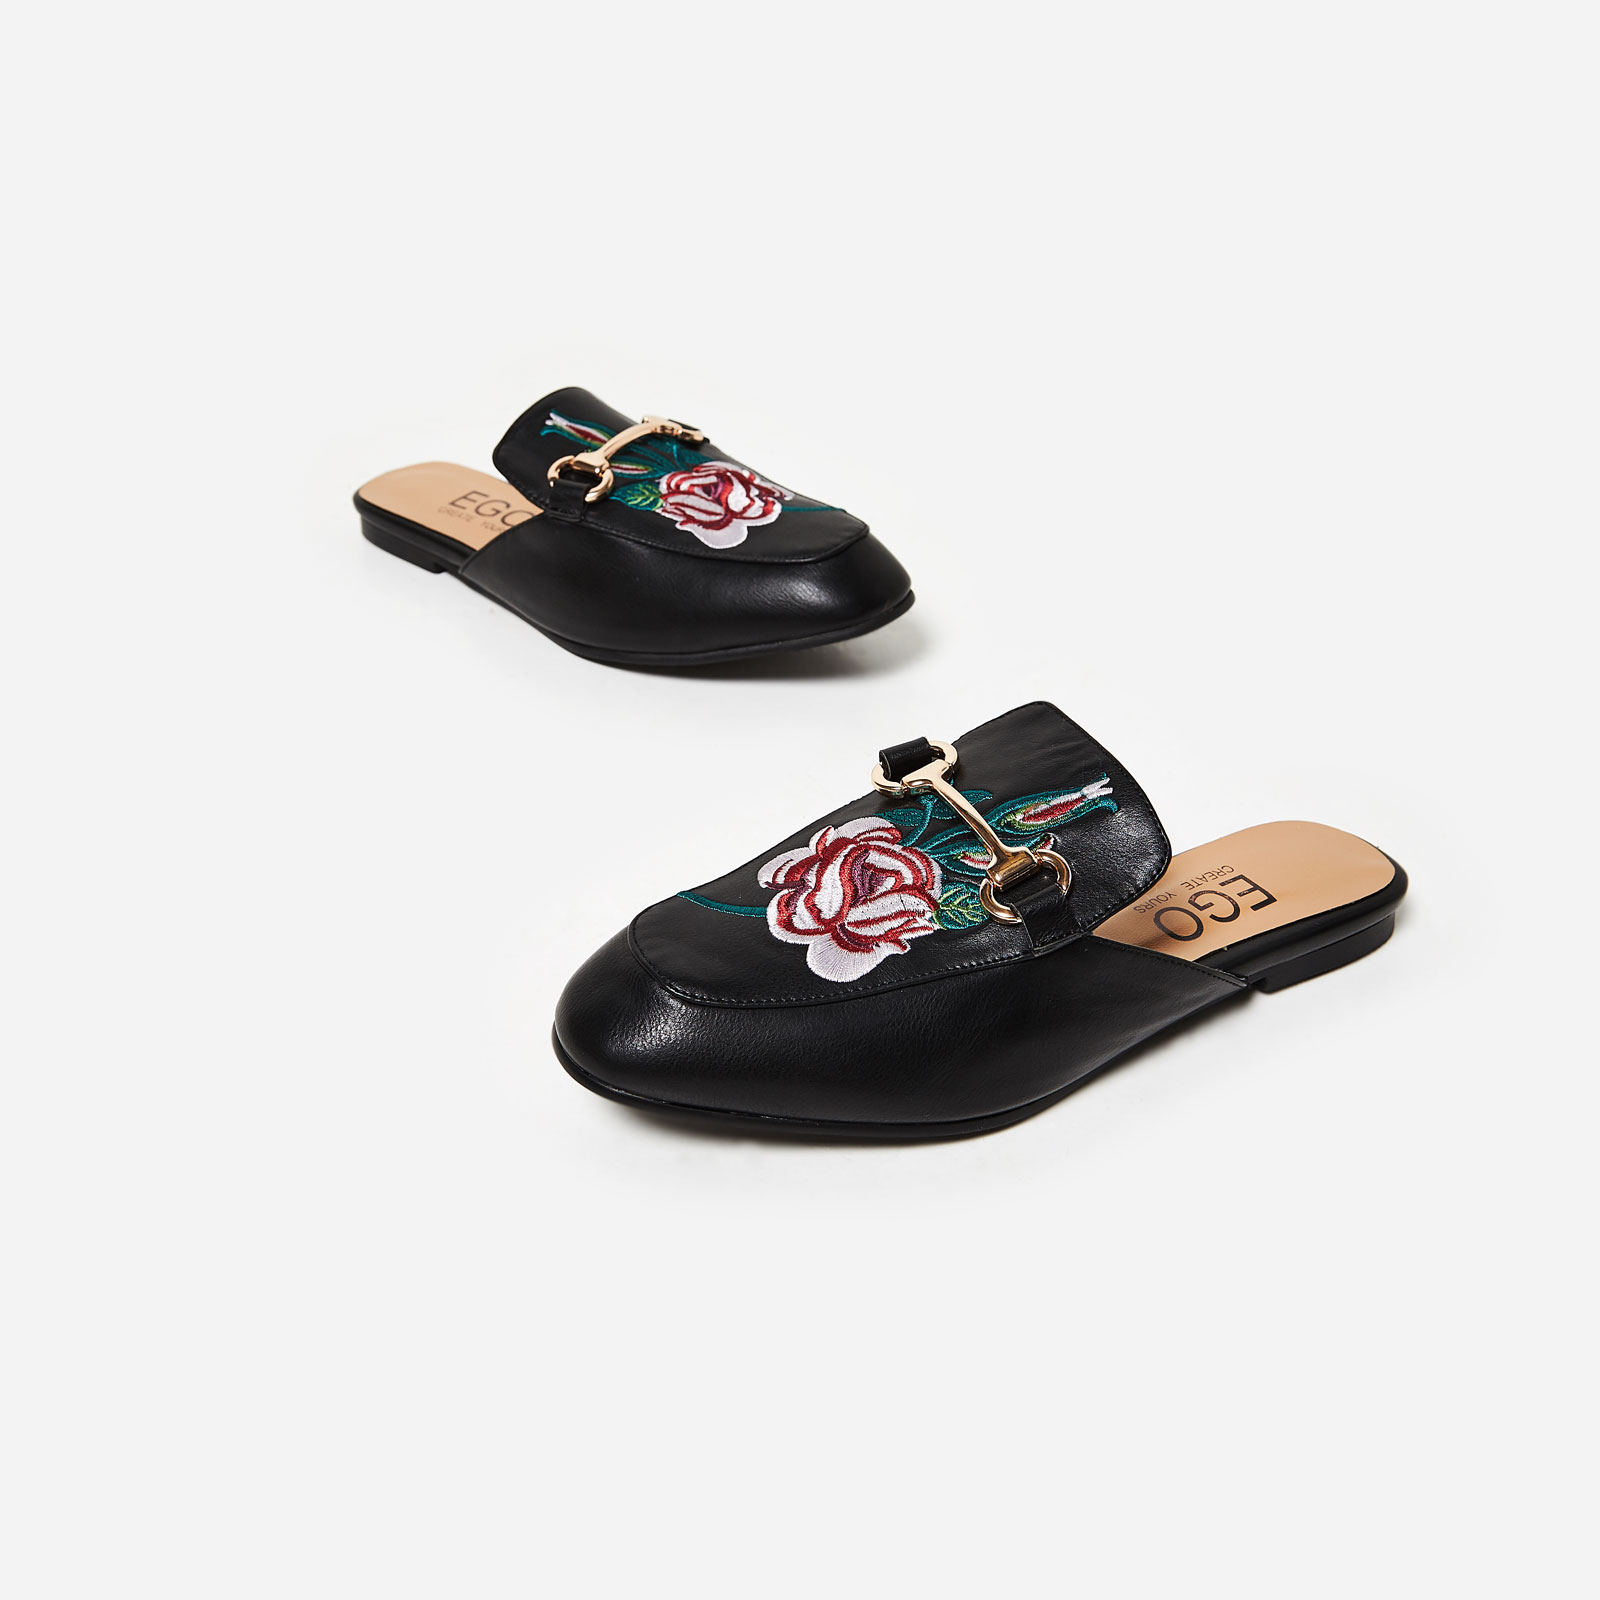 Cheska Floral Embroidered Flat Mule In Black Faux Leather Image 1